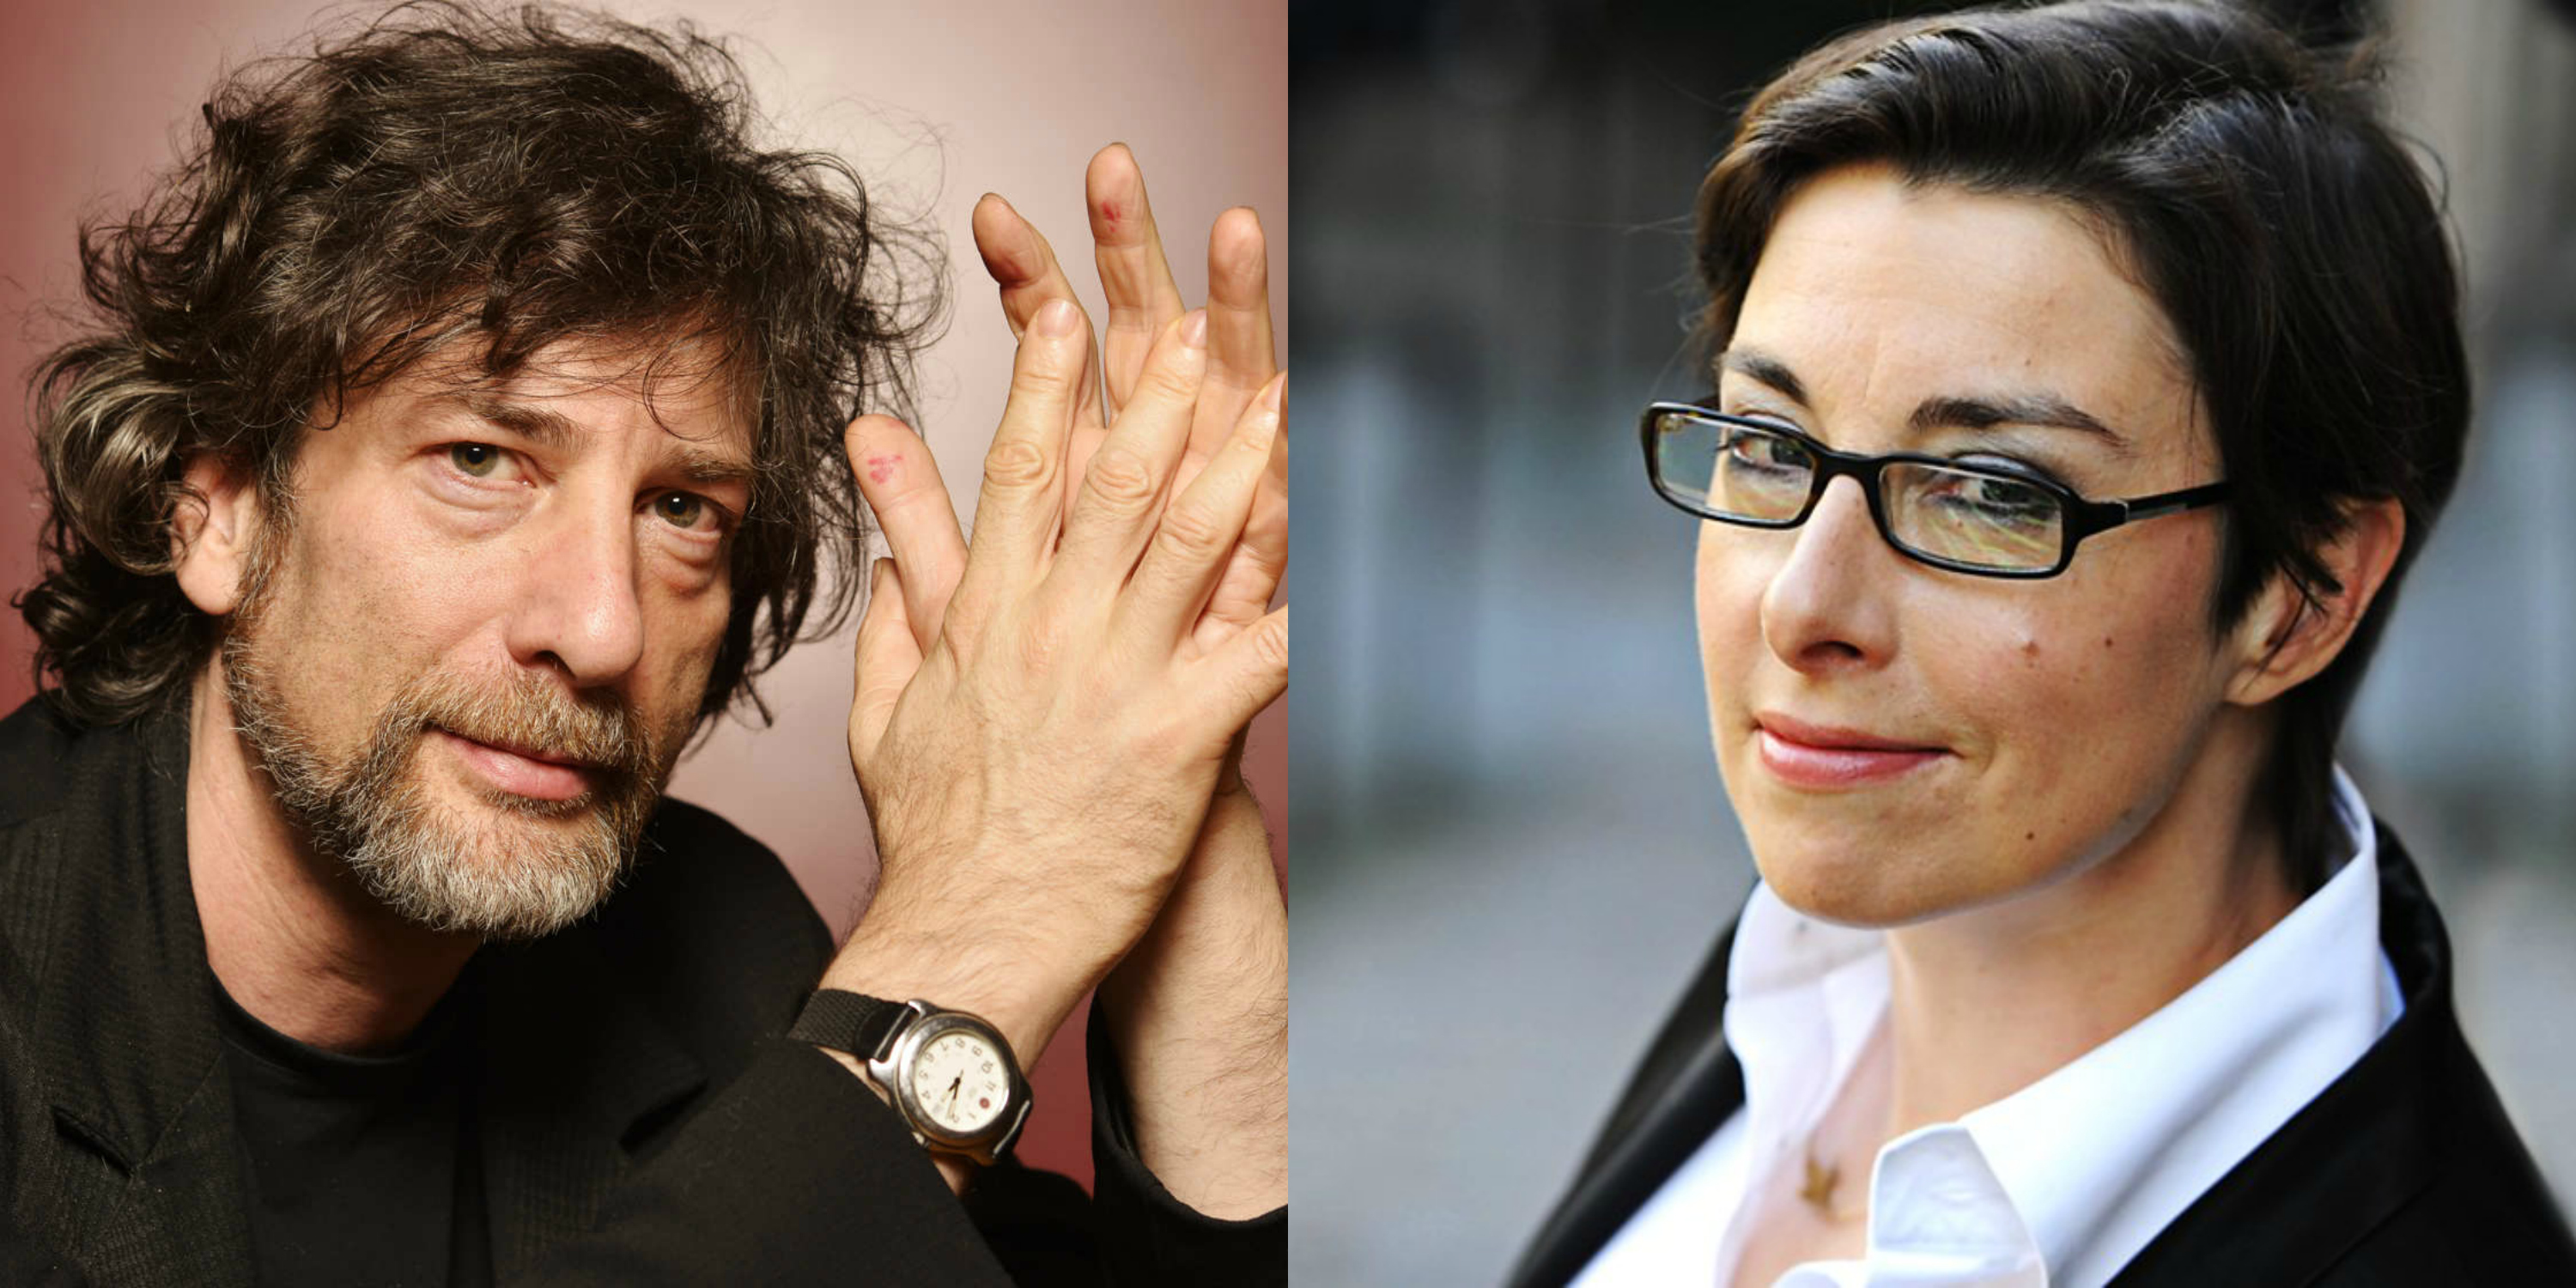 Author Neil Gaiman (left) is an advocate for Sue Perkins (right) being the first female Doctor on 'Doctor Who.'